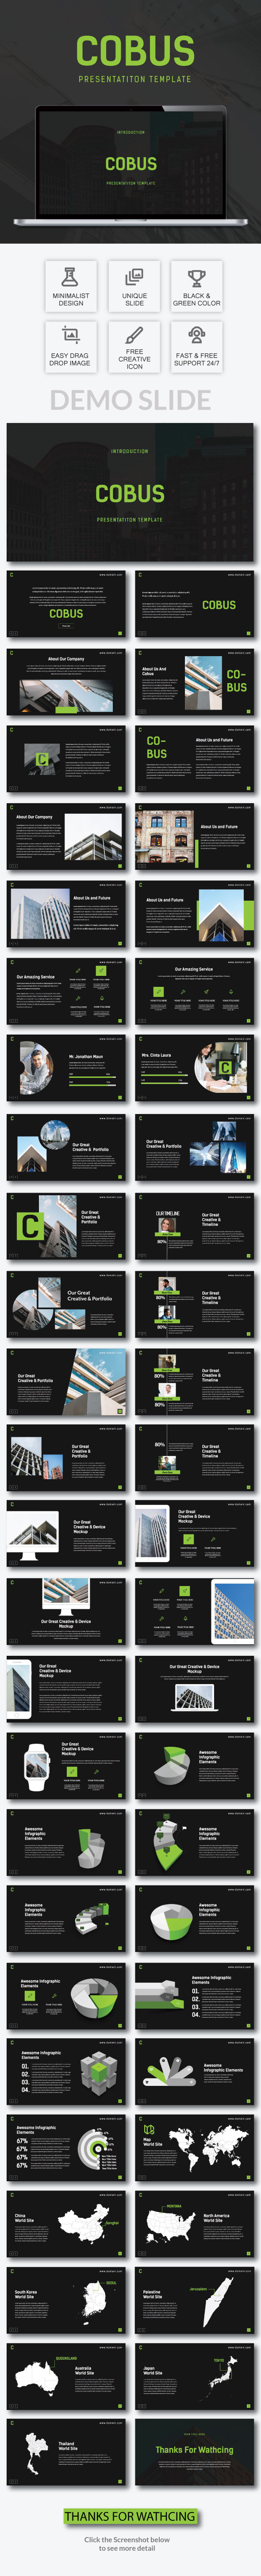 Cobus - Presentation Template - PowerPoint Templates Presentation Templates